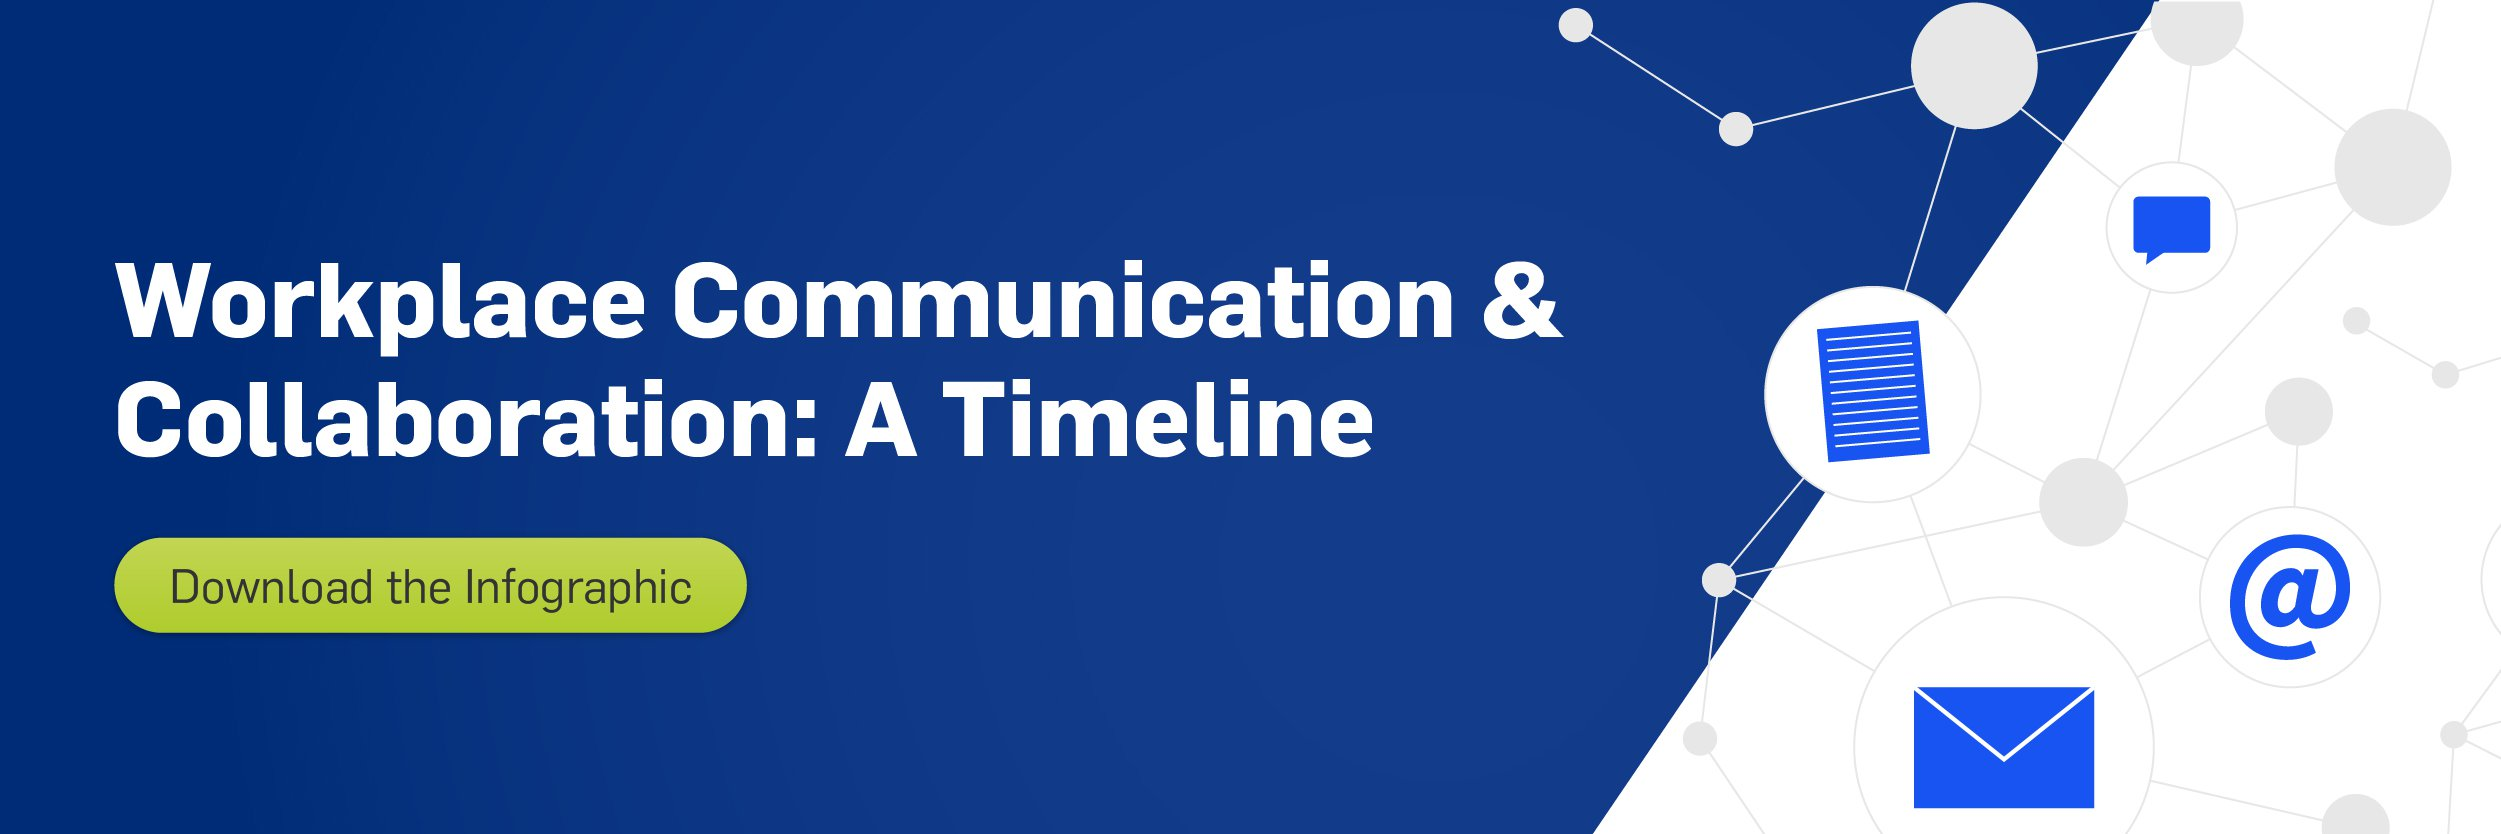 workplace communication and collaboration timeline